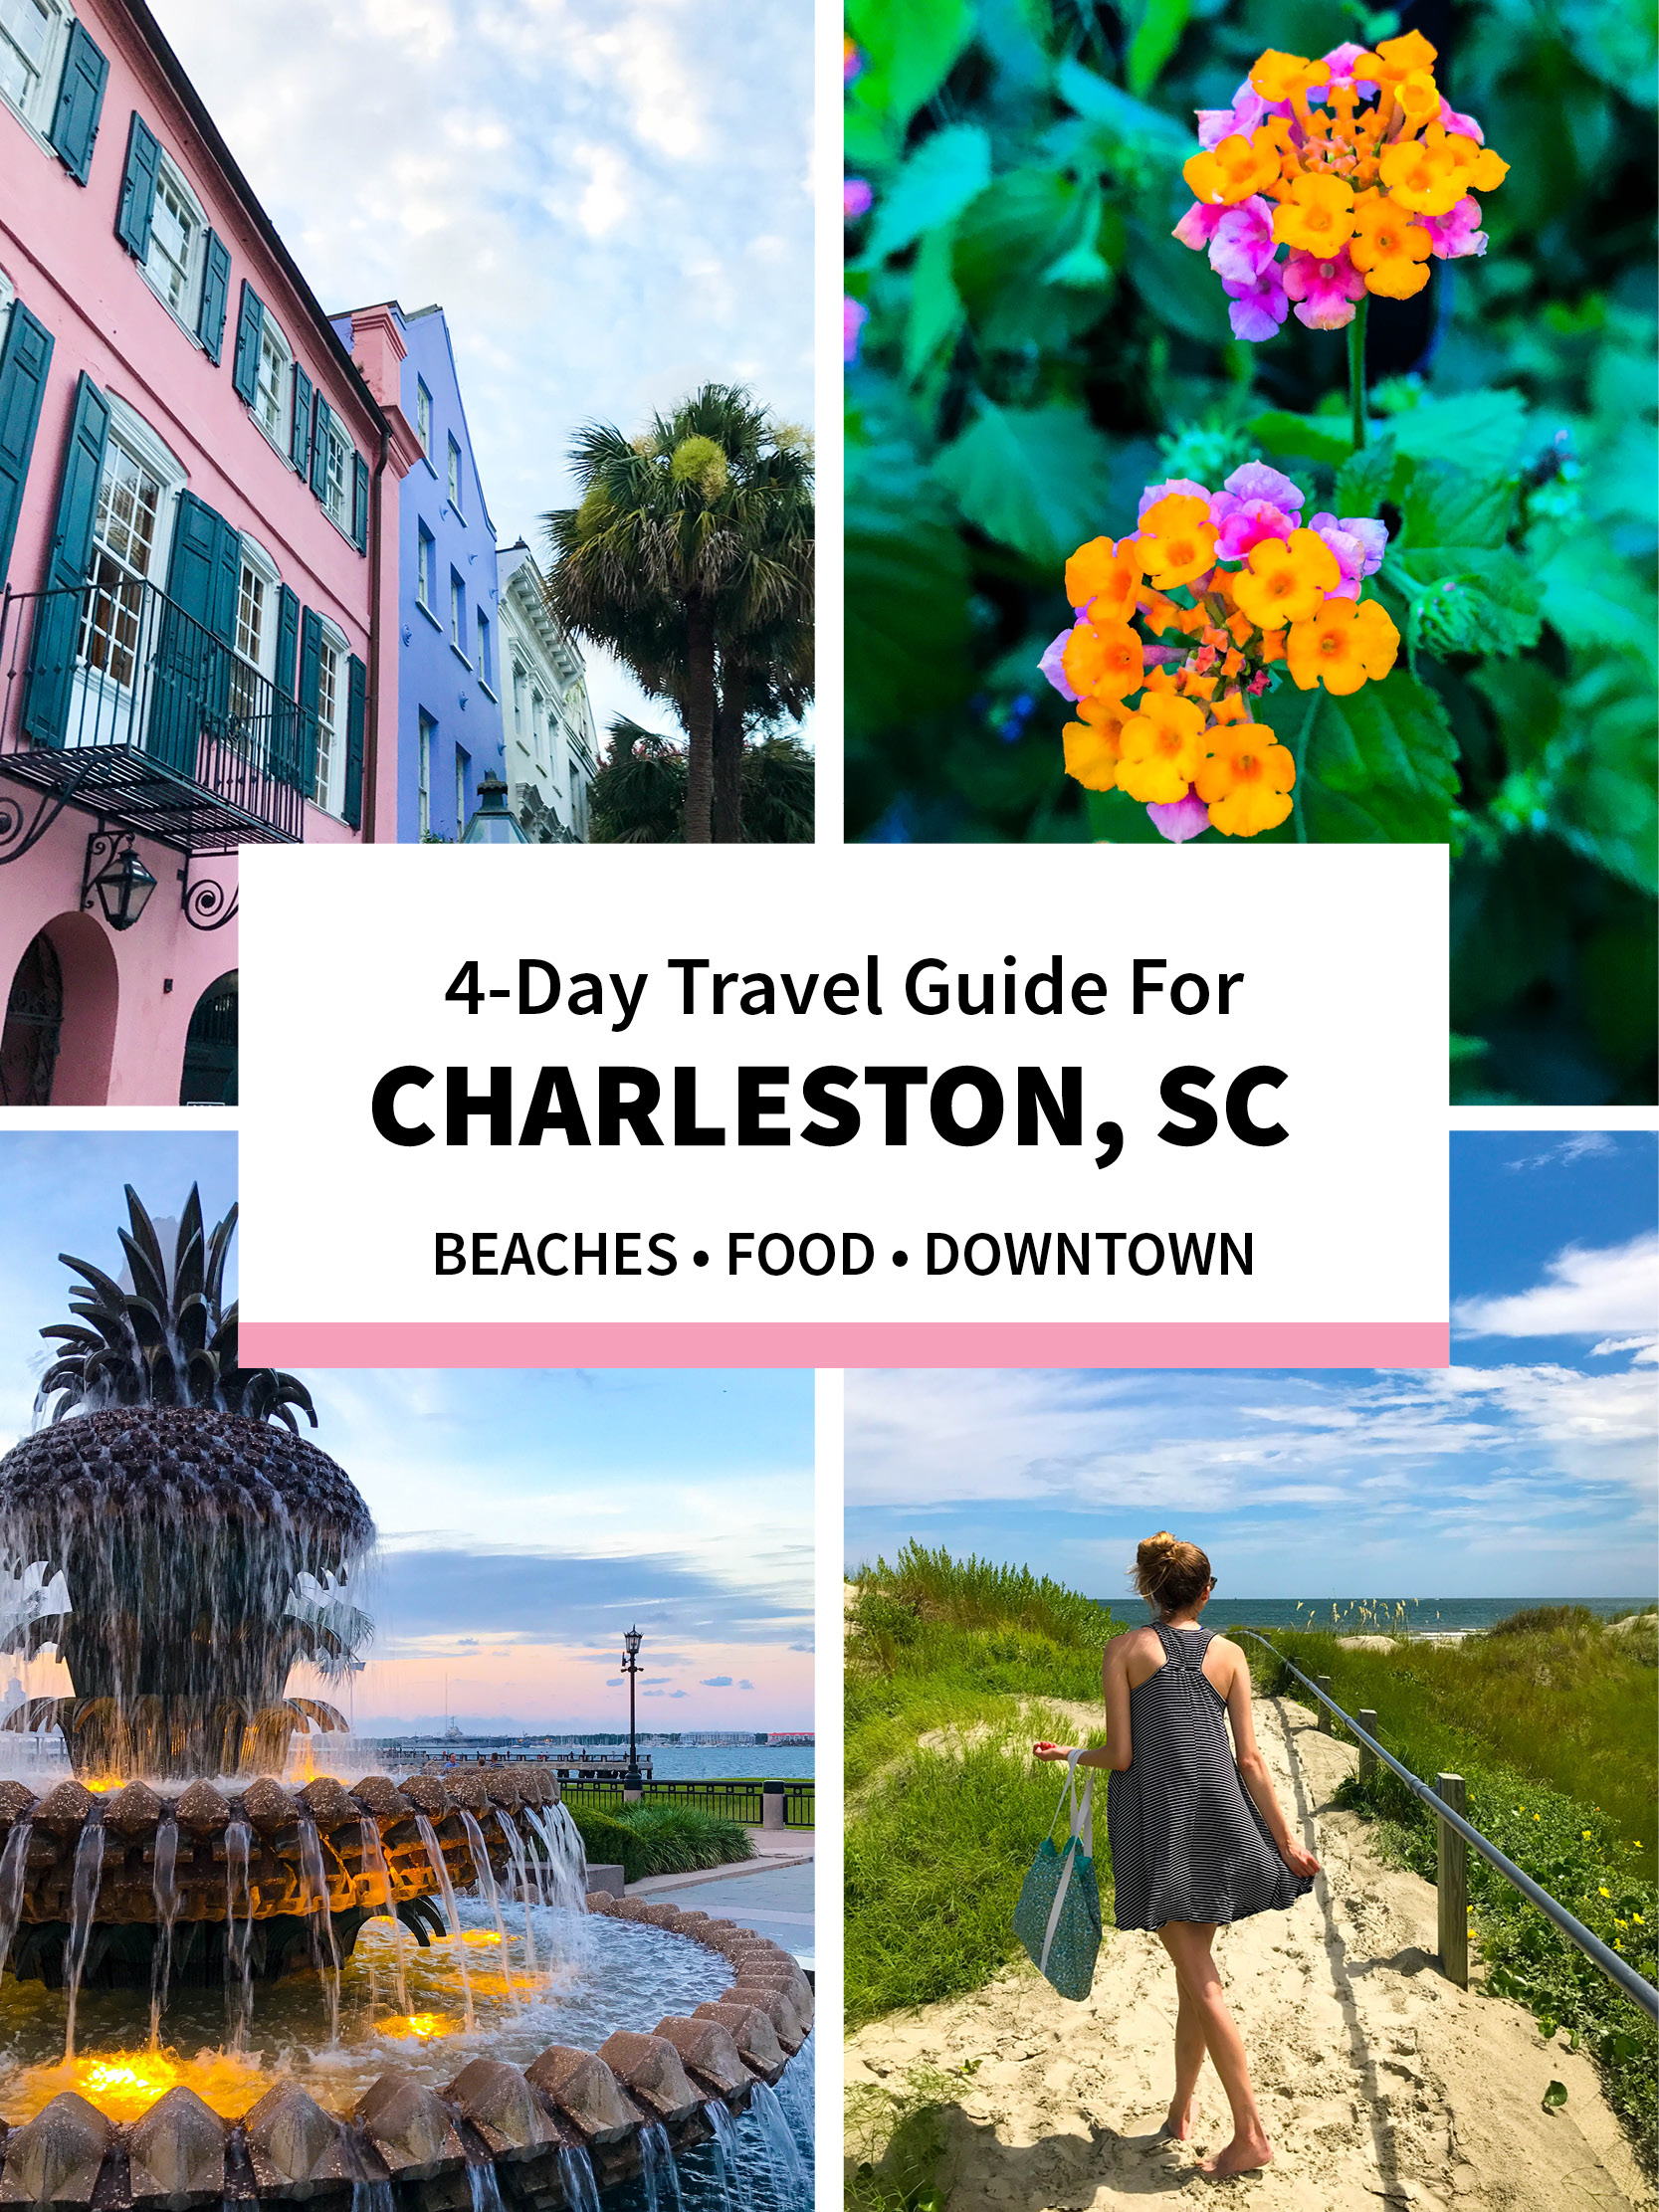 4-Day Charleston Travel Guide